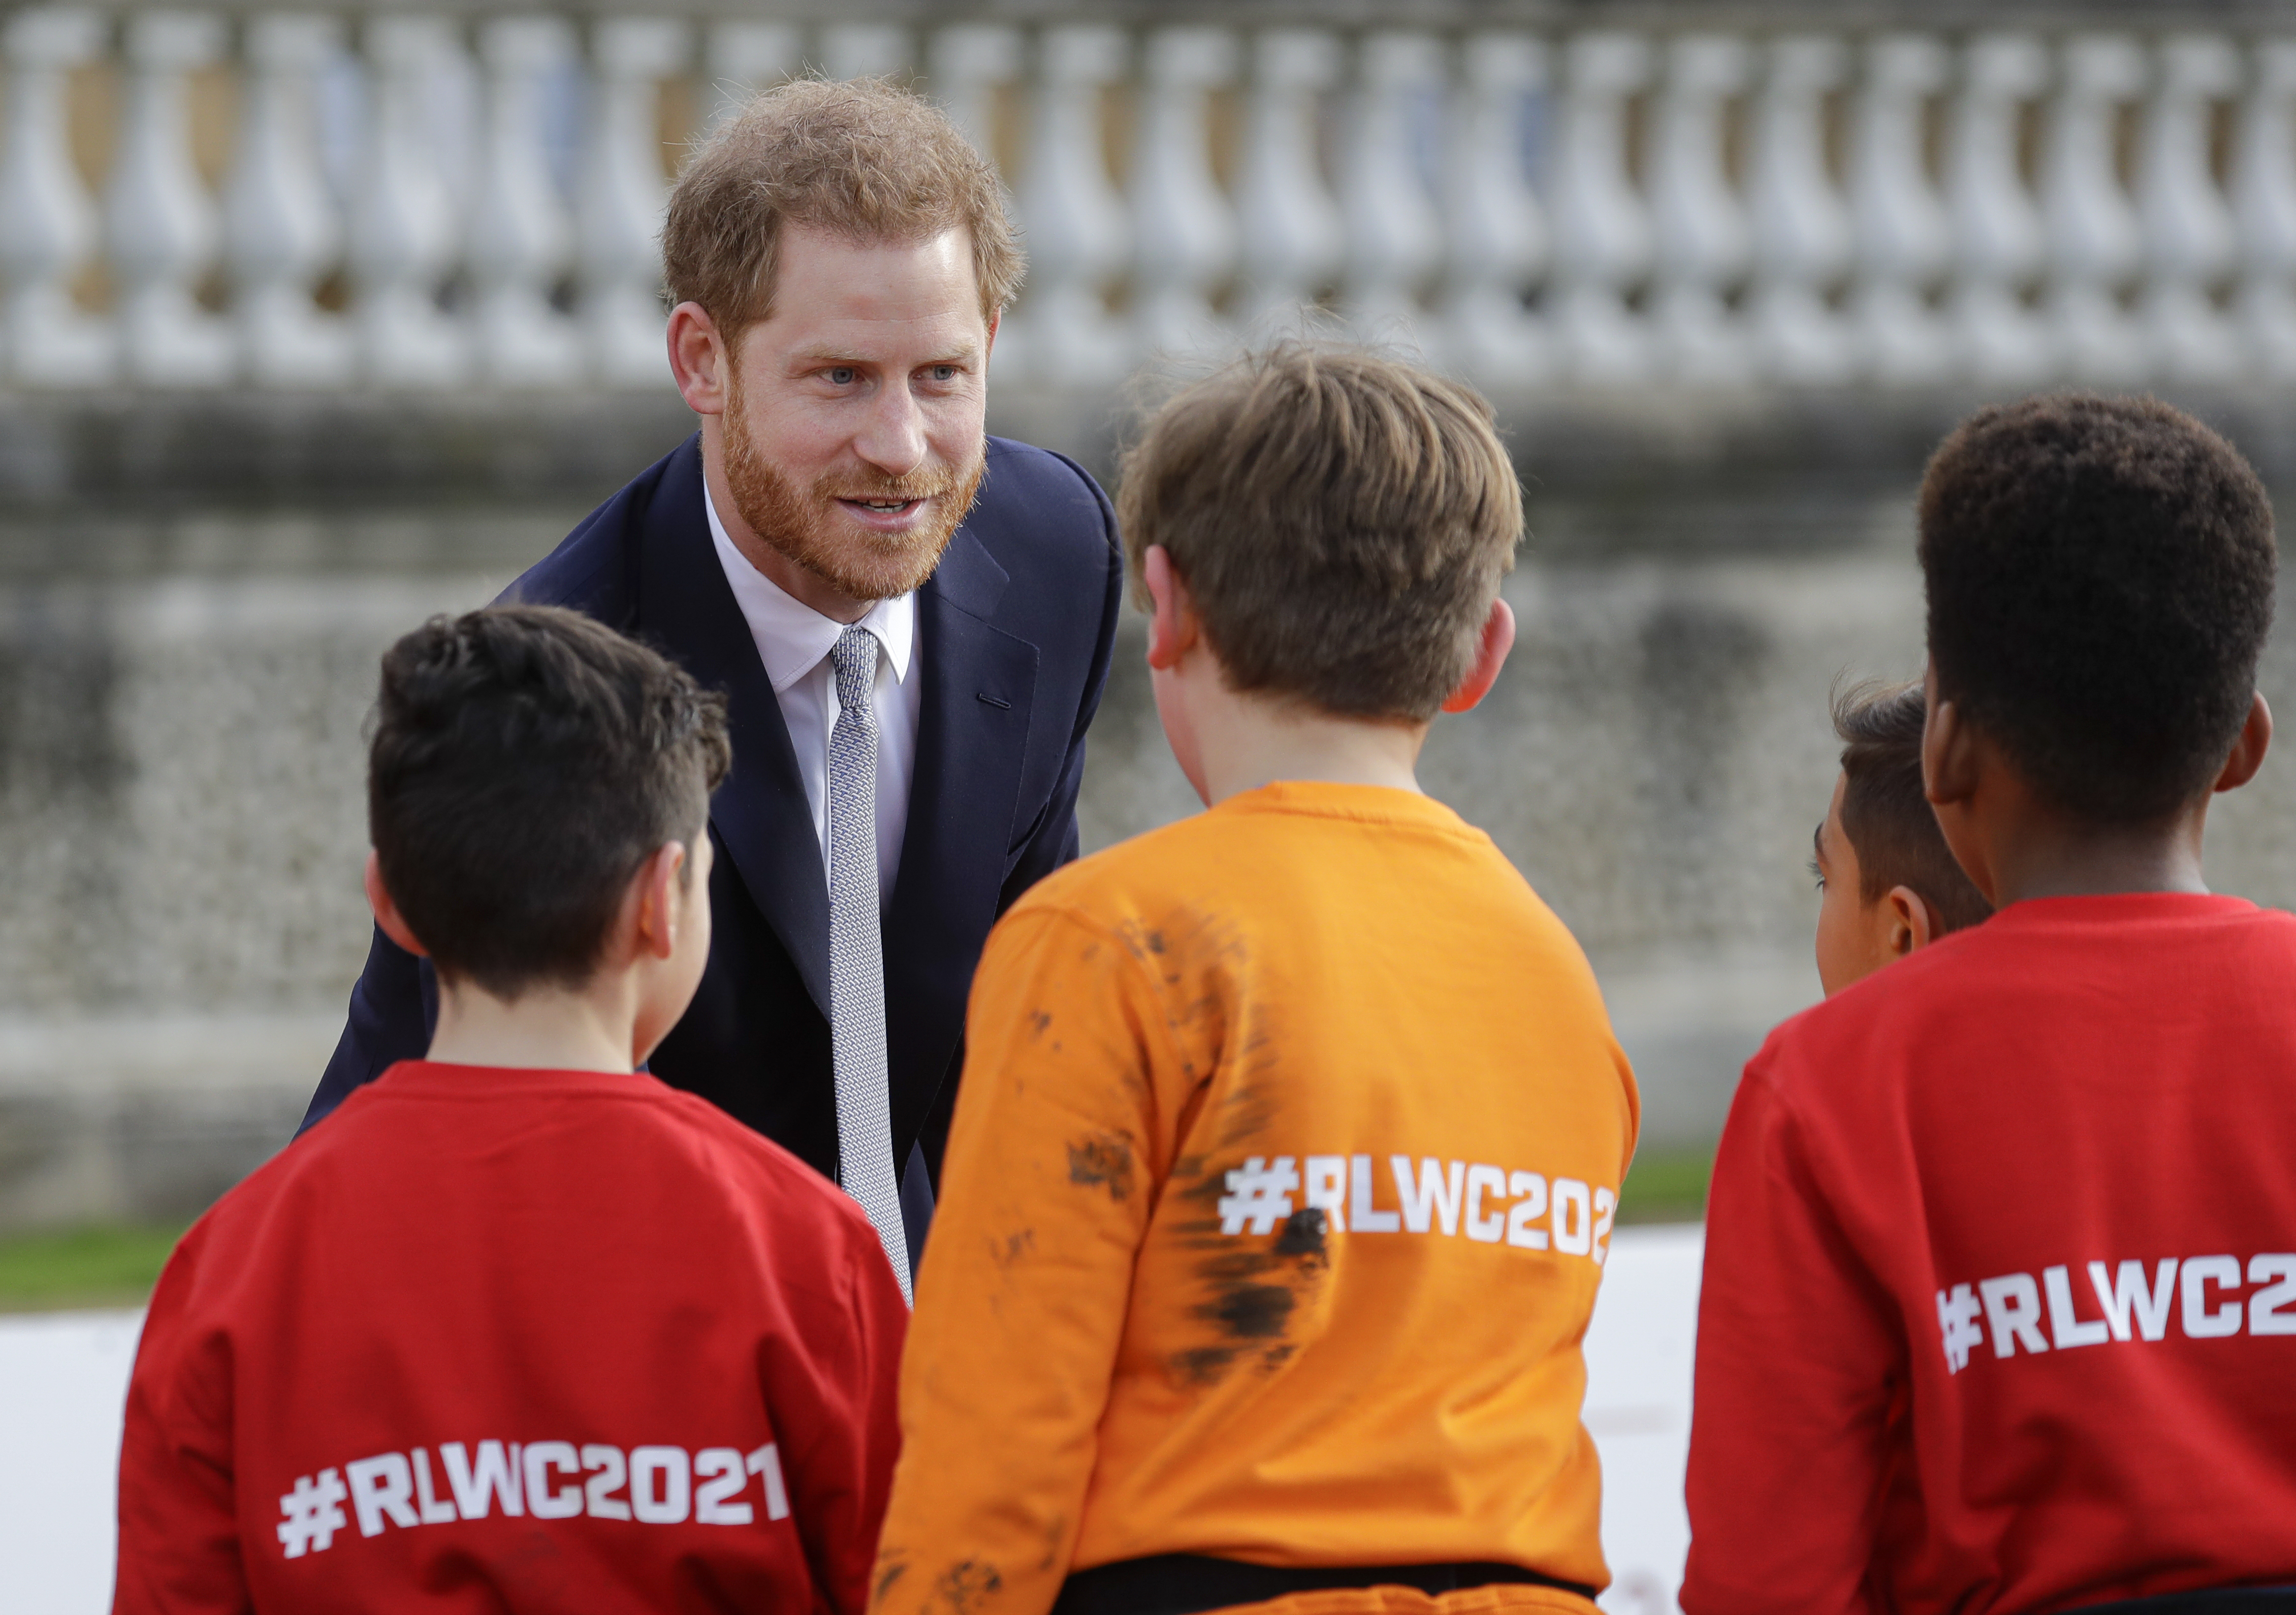 Britain's Prince Harry greets schoolchildren in the gardens at Buckingham Palace in London, Thursday, Jan. 16, 2020.